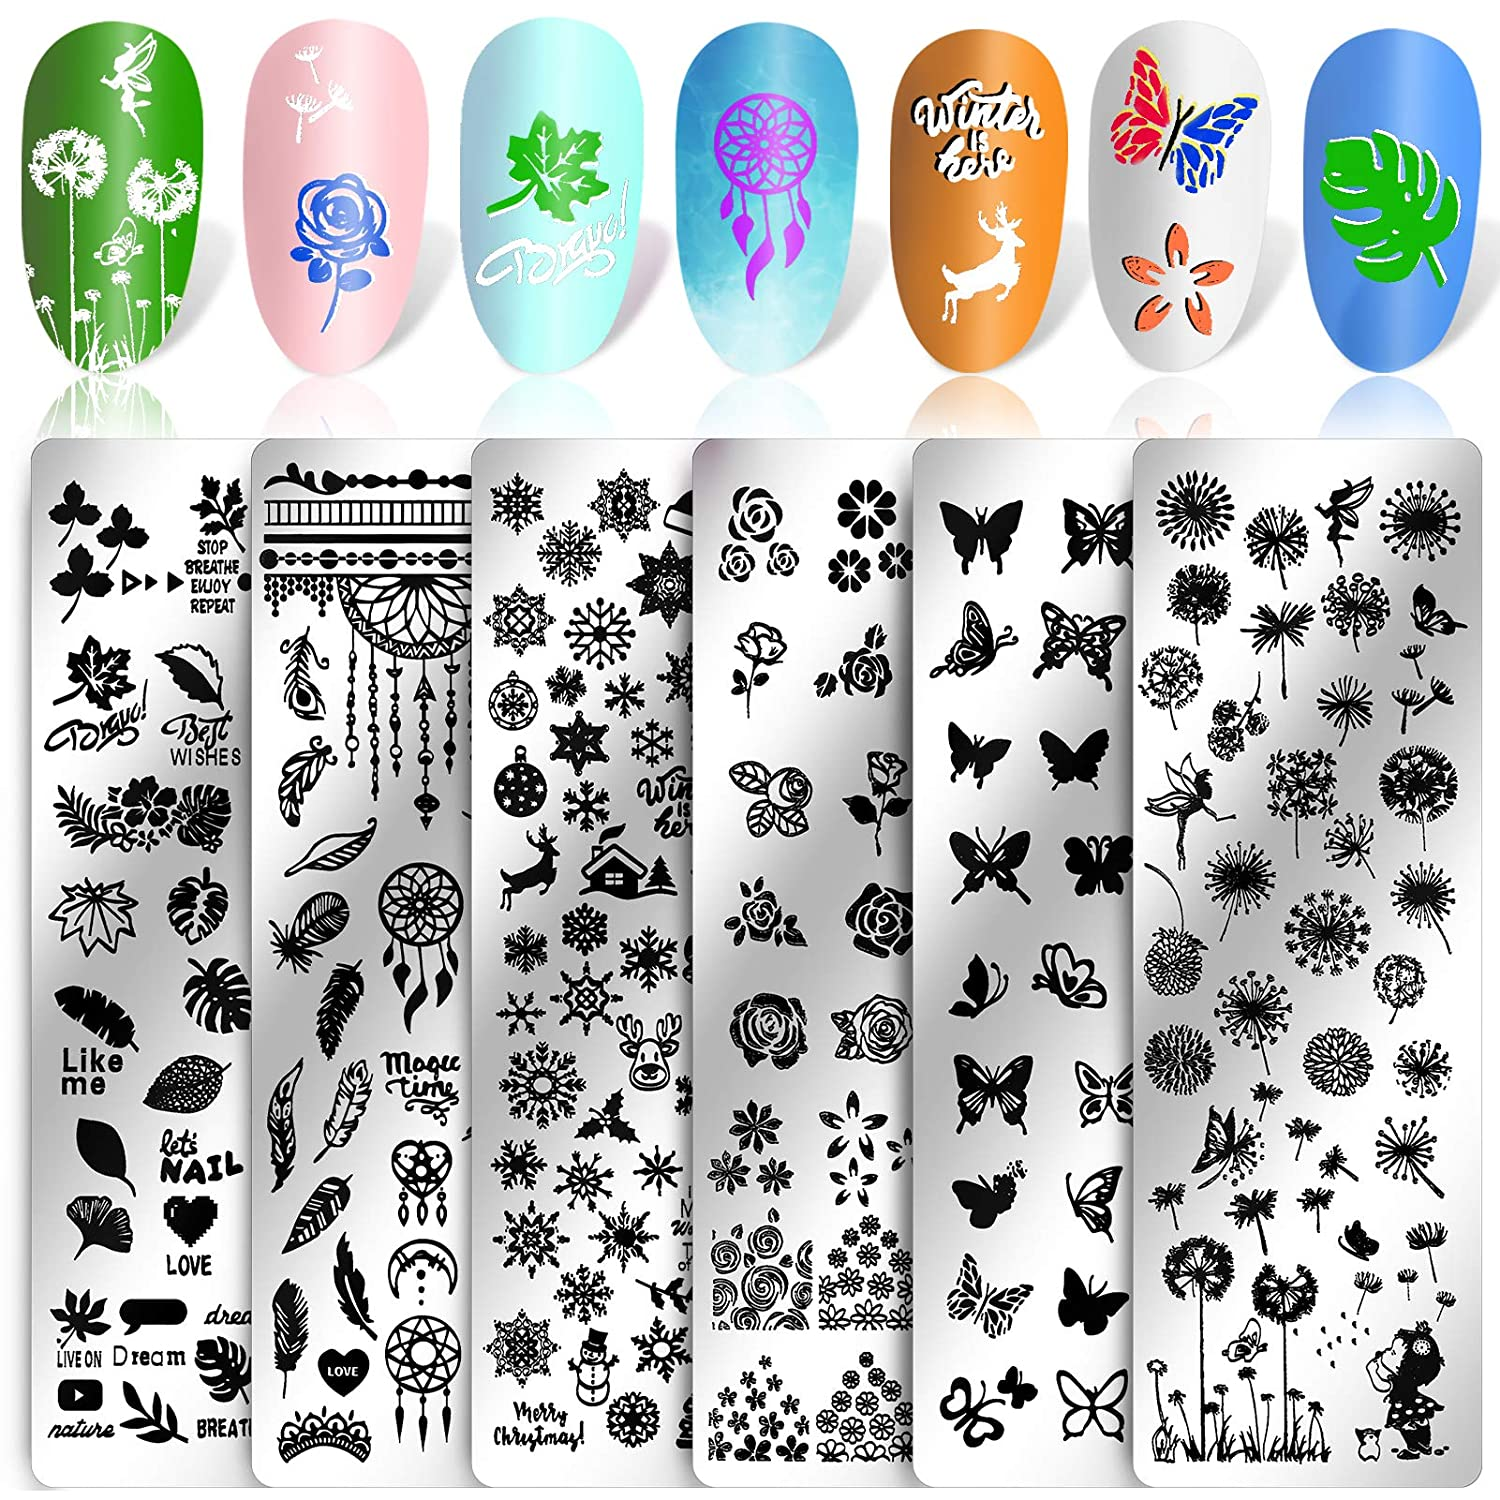 Konsait 6Pack Nail Art Stamp Template Nail Stamping Plates Butterfly Flower Templates Image Plates for Manicuring DIY Print Nail Decals for Women Girls Kids Salon Spa Home Favor Decor Tools